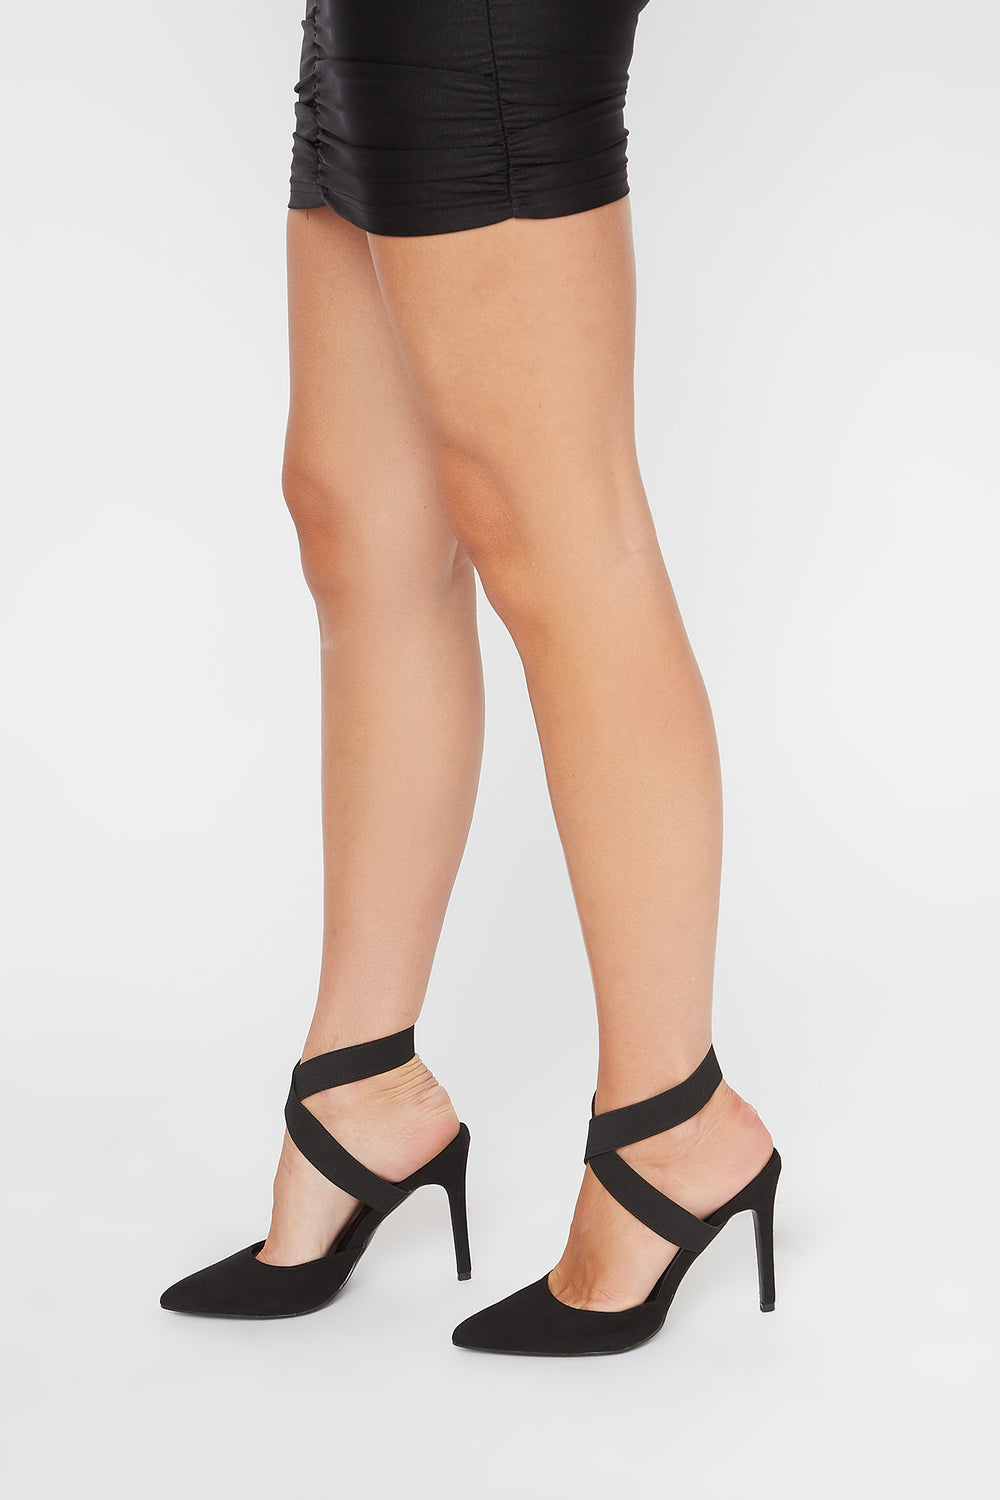 Elastic Strap Mule Pumps Black